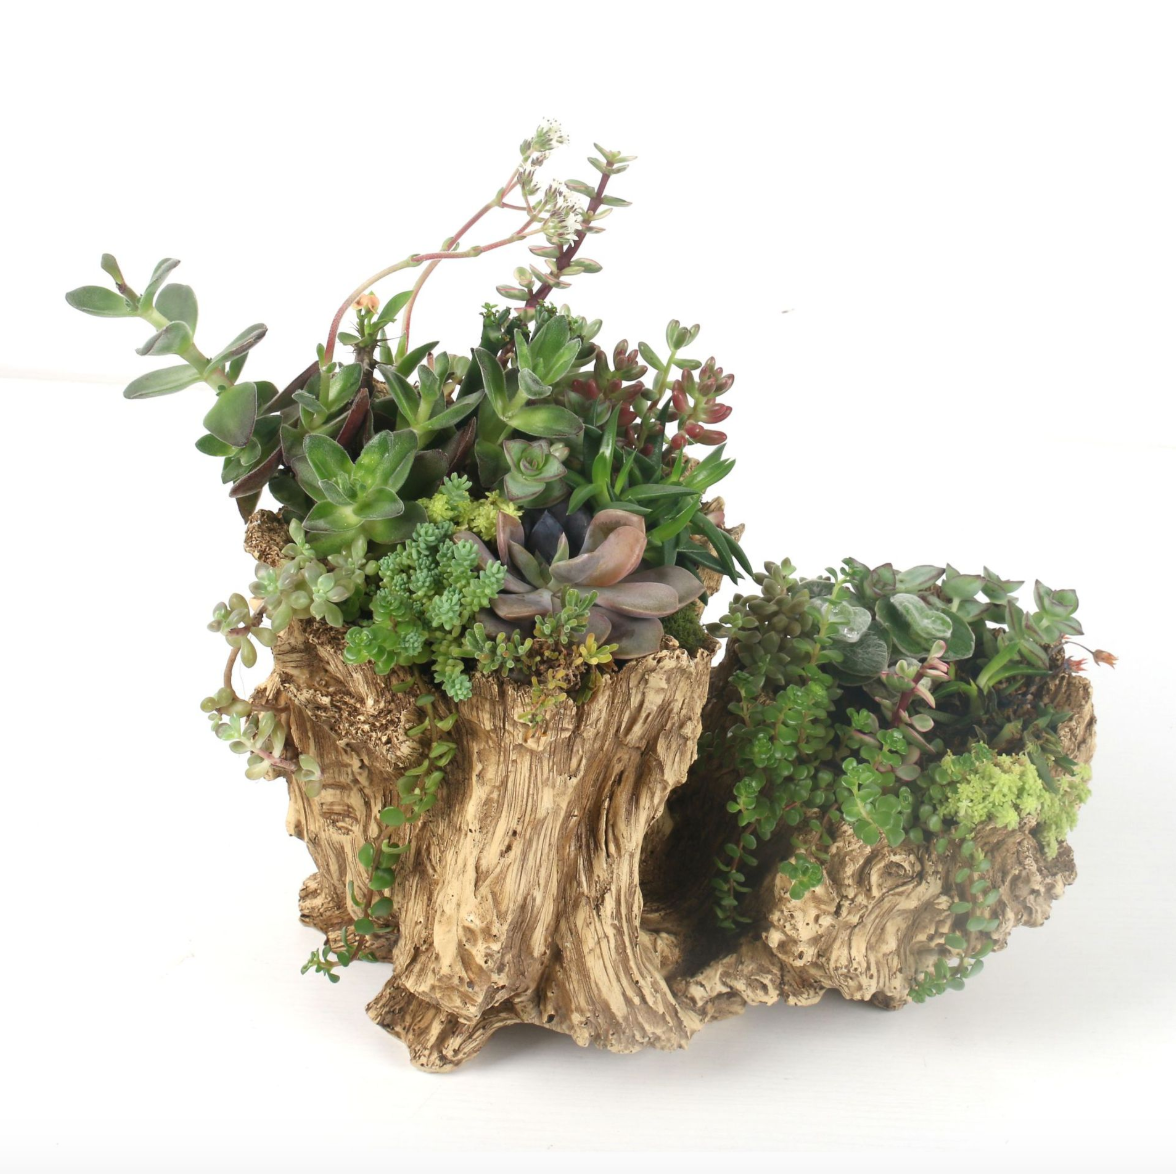 Vintage Stump Log Planter Pot Driftwood Planter Resin Faux Wood Succulent Container Flower Pot